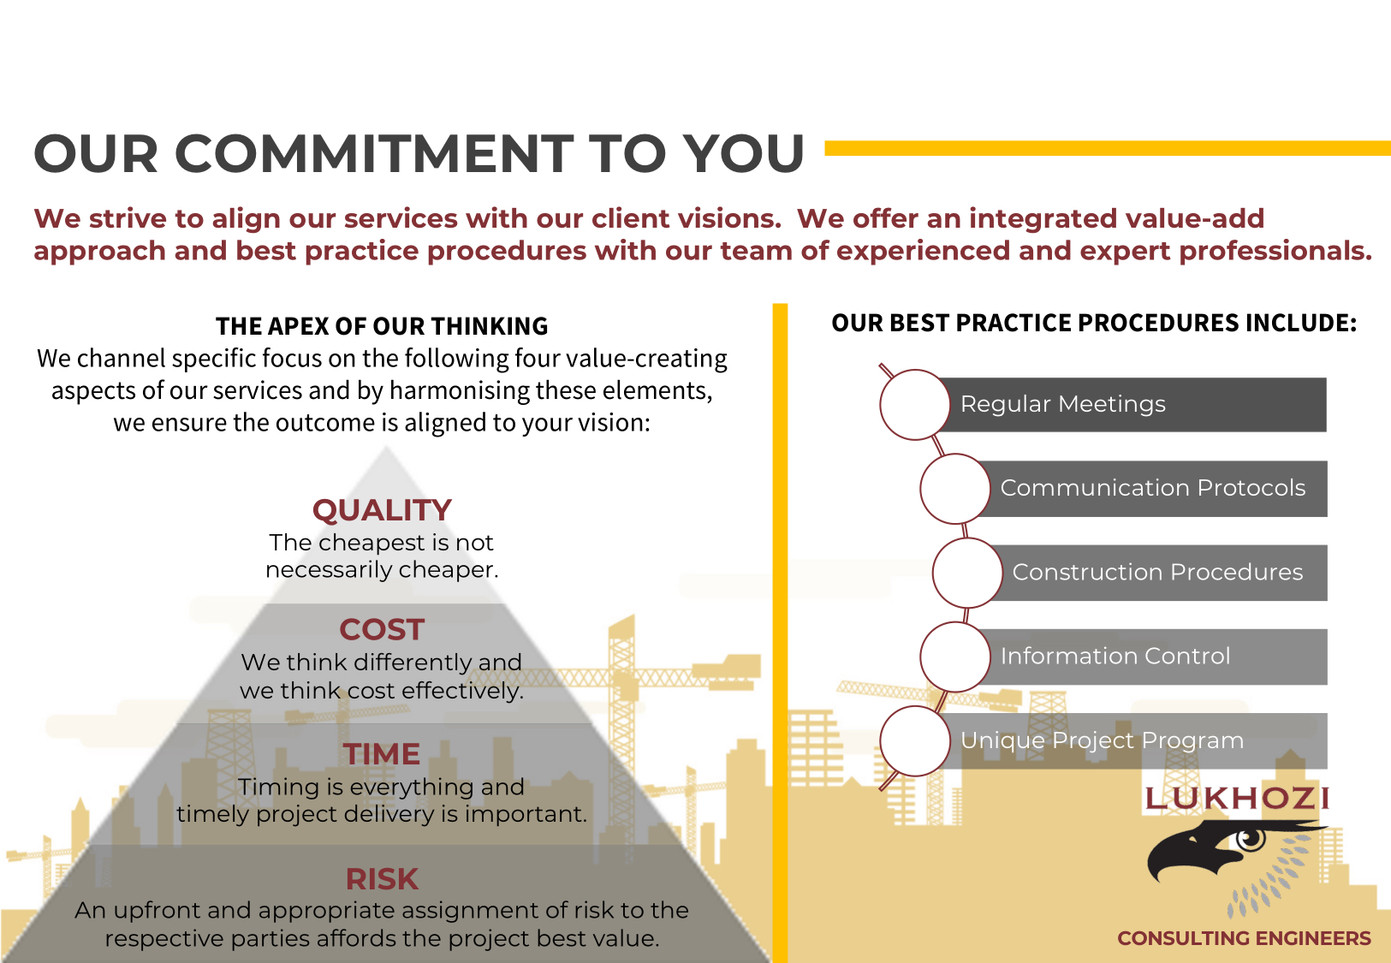 Capability Statement - Our Commitment To You